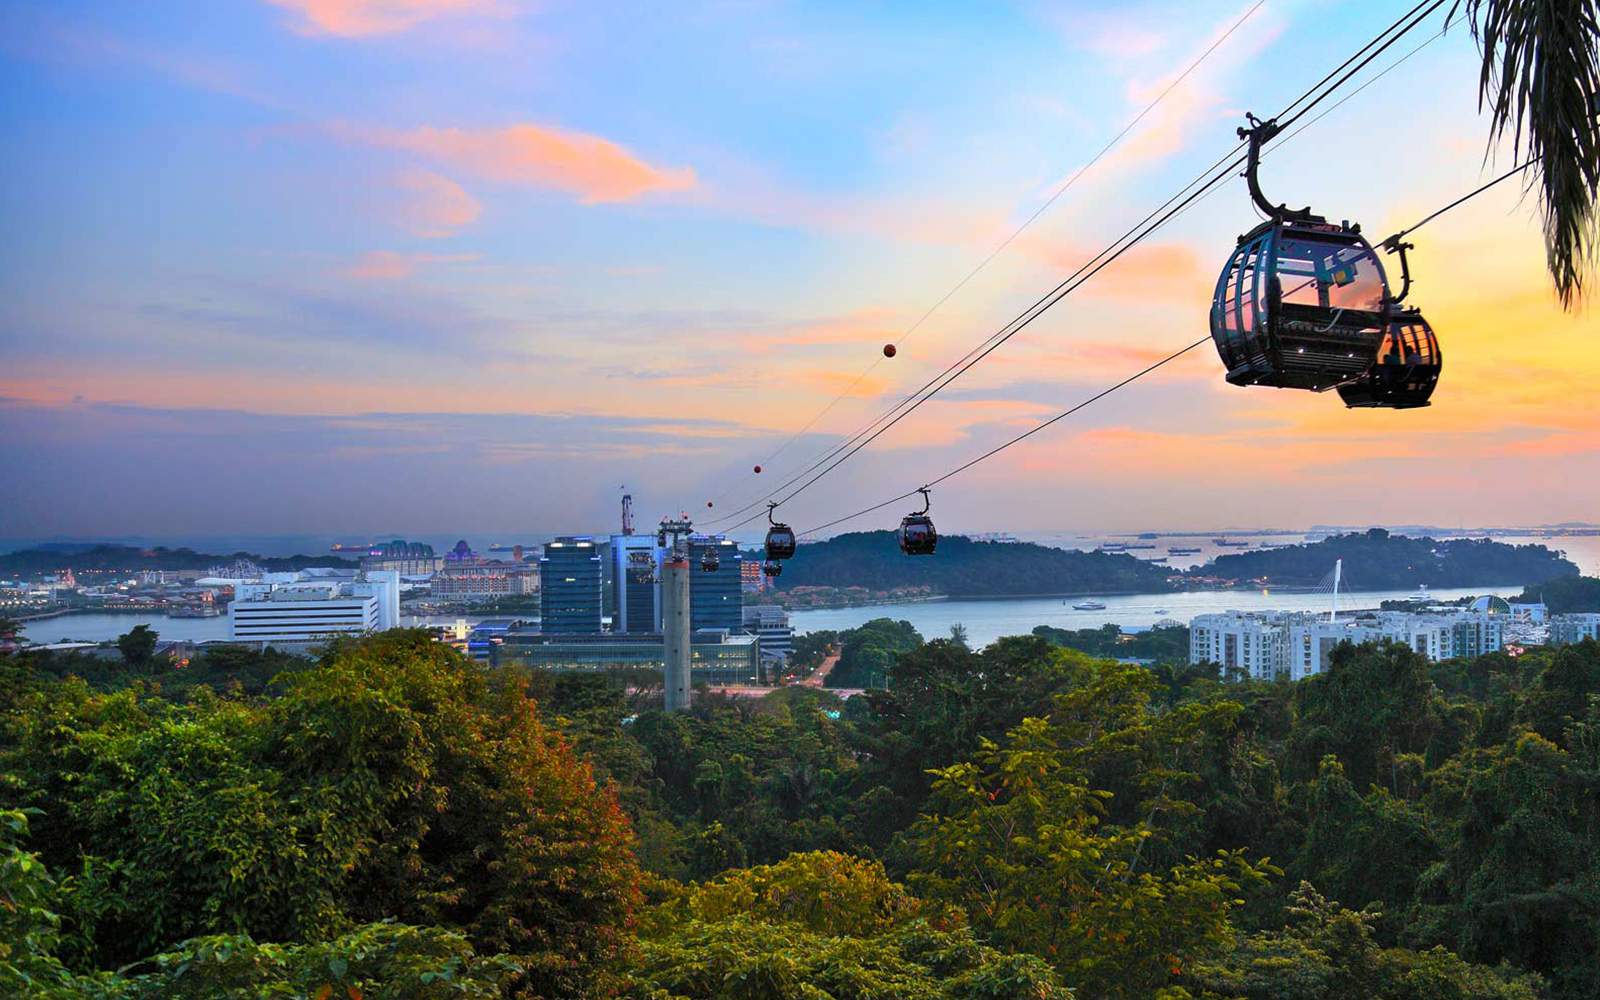 3530e0ab 4eeb 4435 9ef8 f791a35d239b 7372 singapore singapore cable car skypass 03